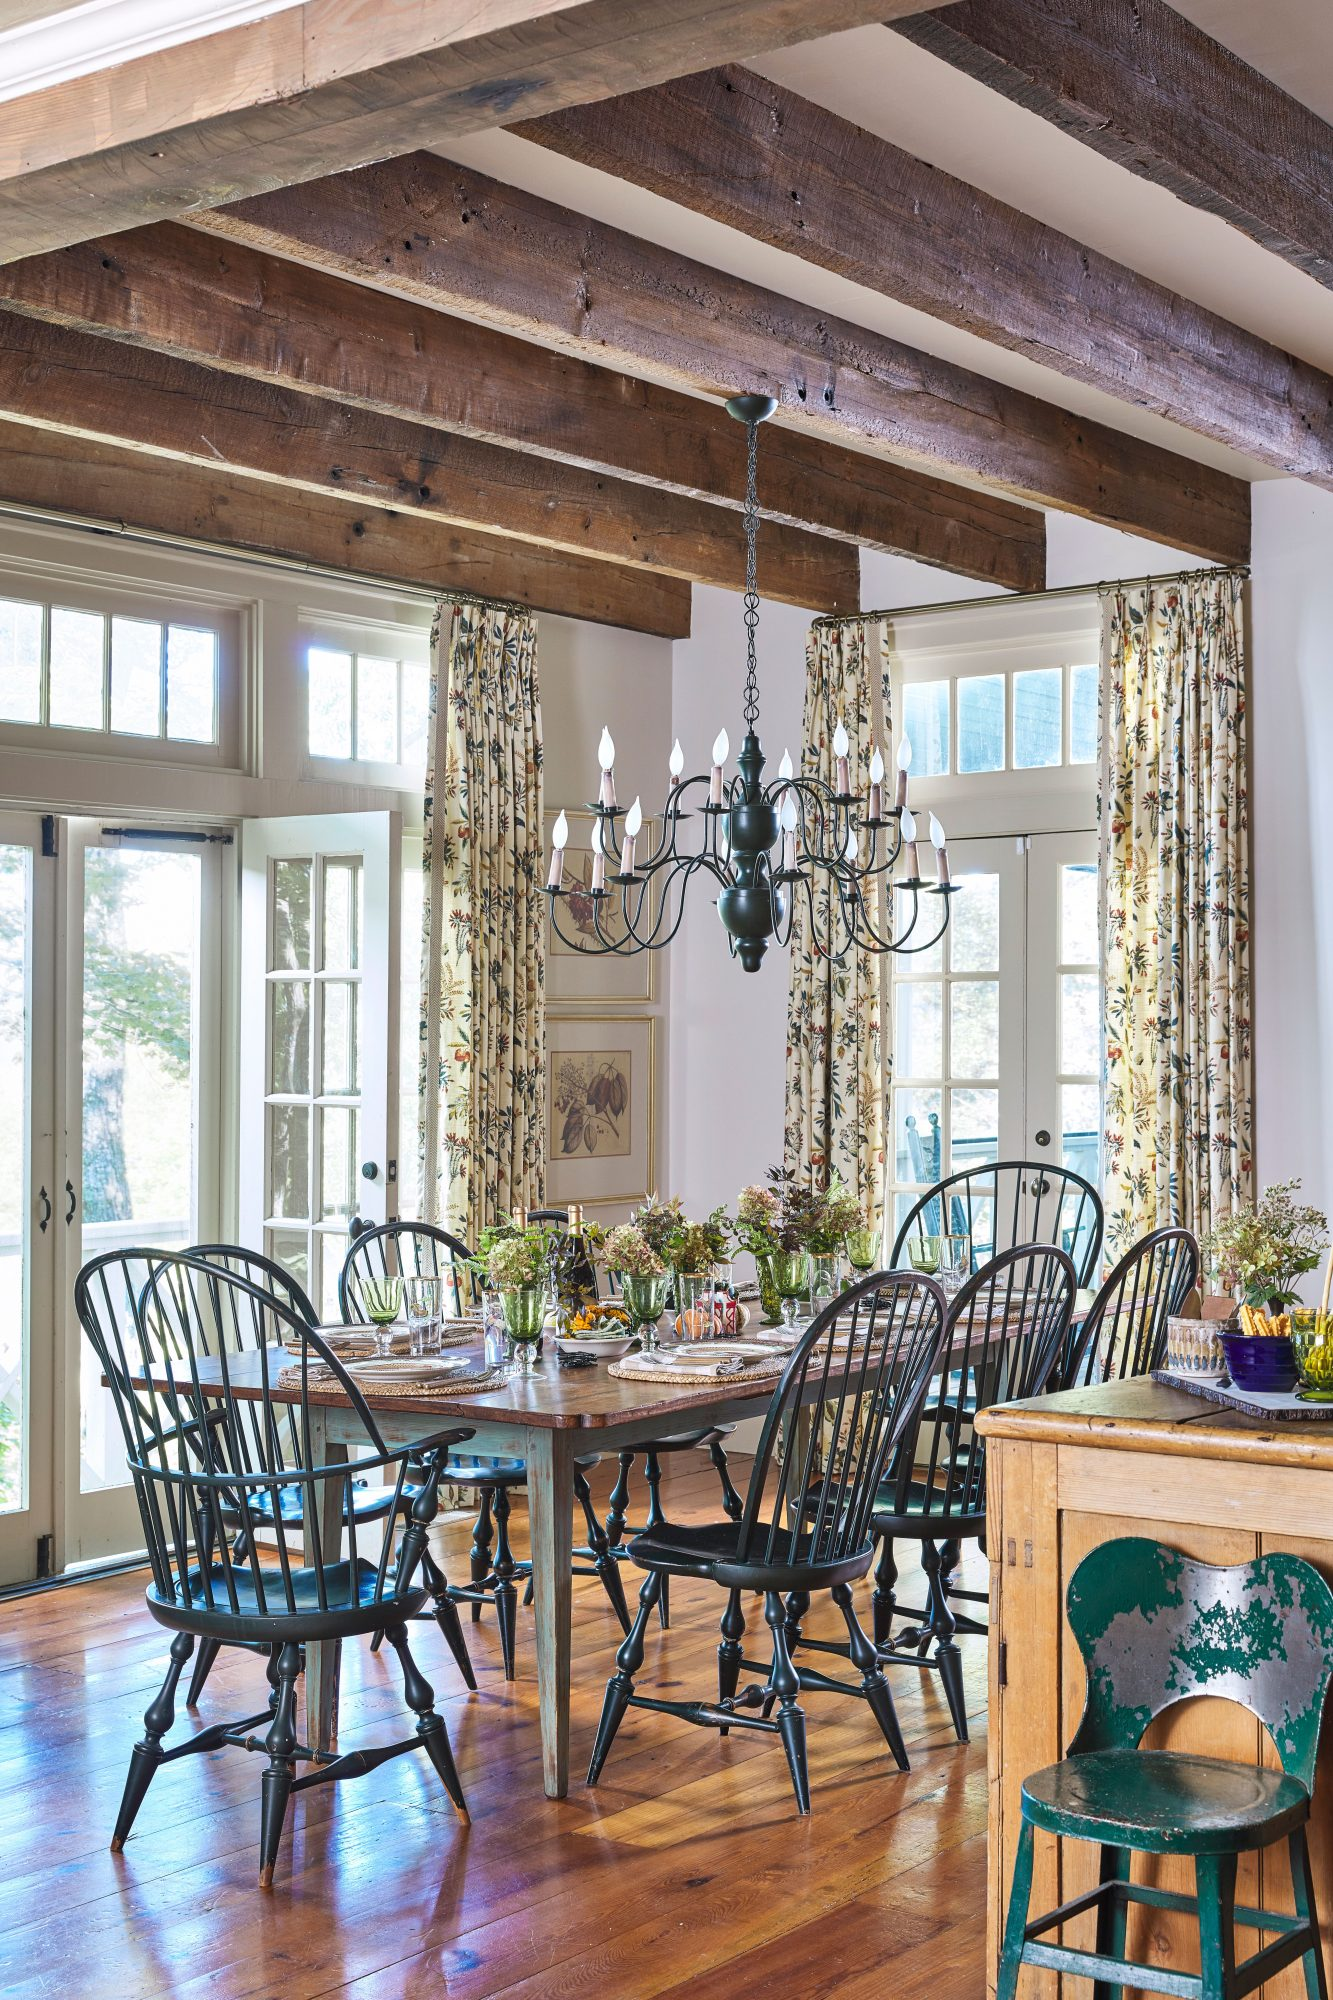 Mountain House Kitchen with Exposed Beams, Large Chandelier